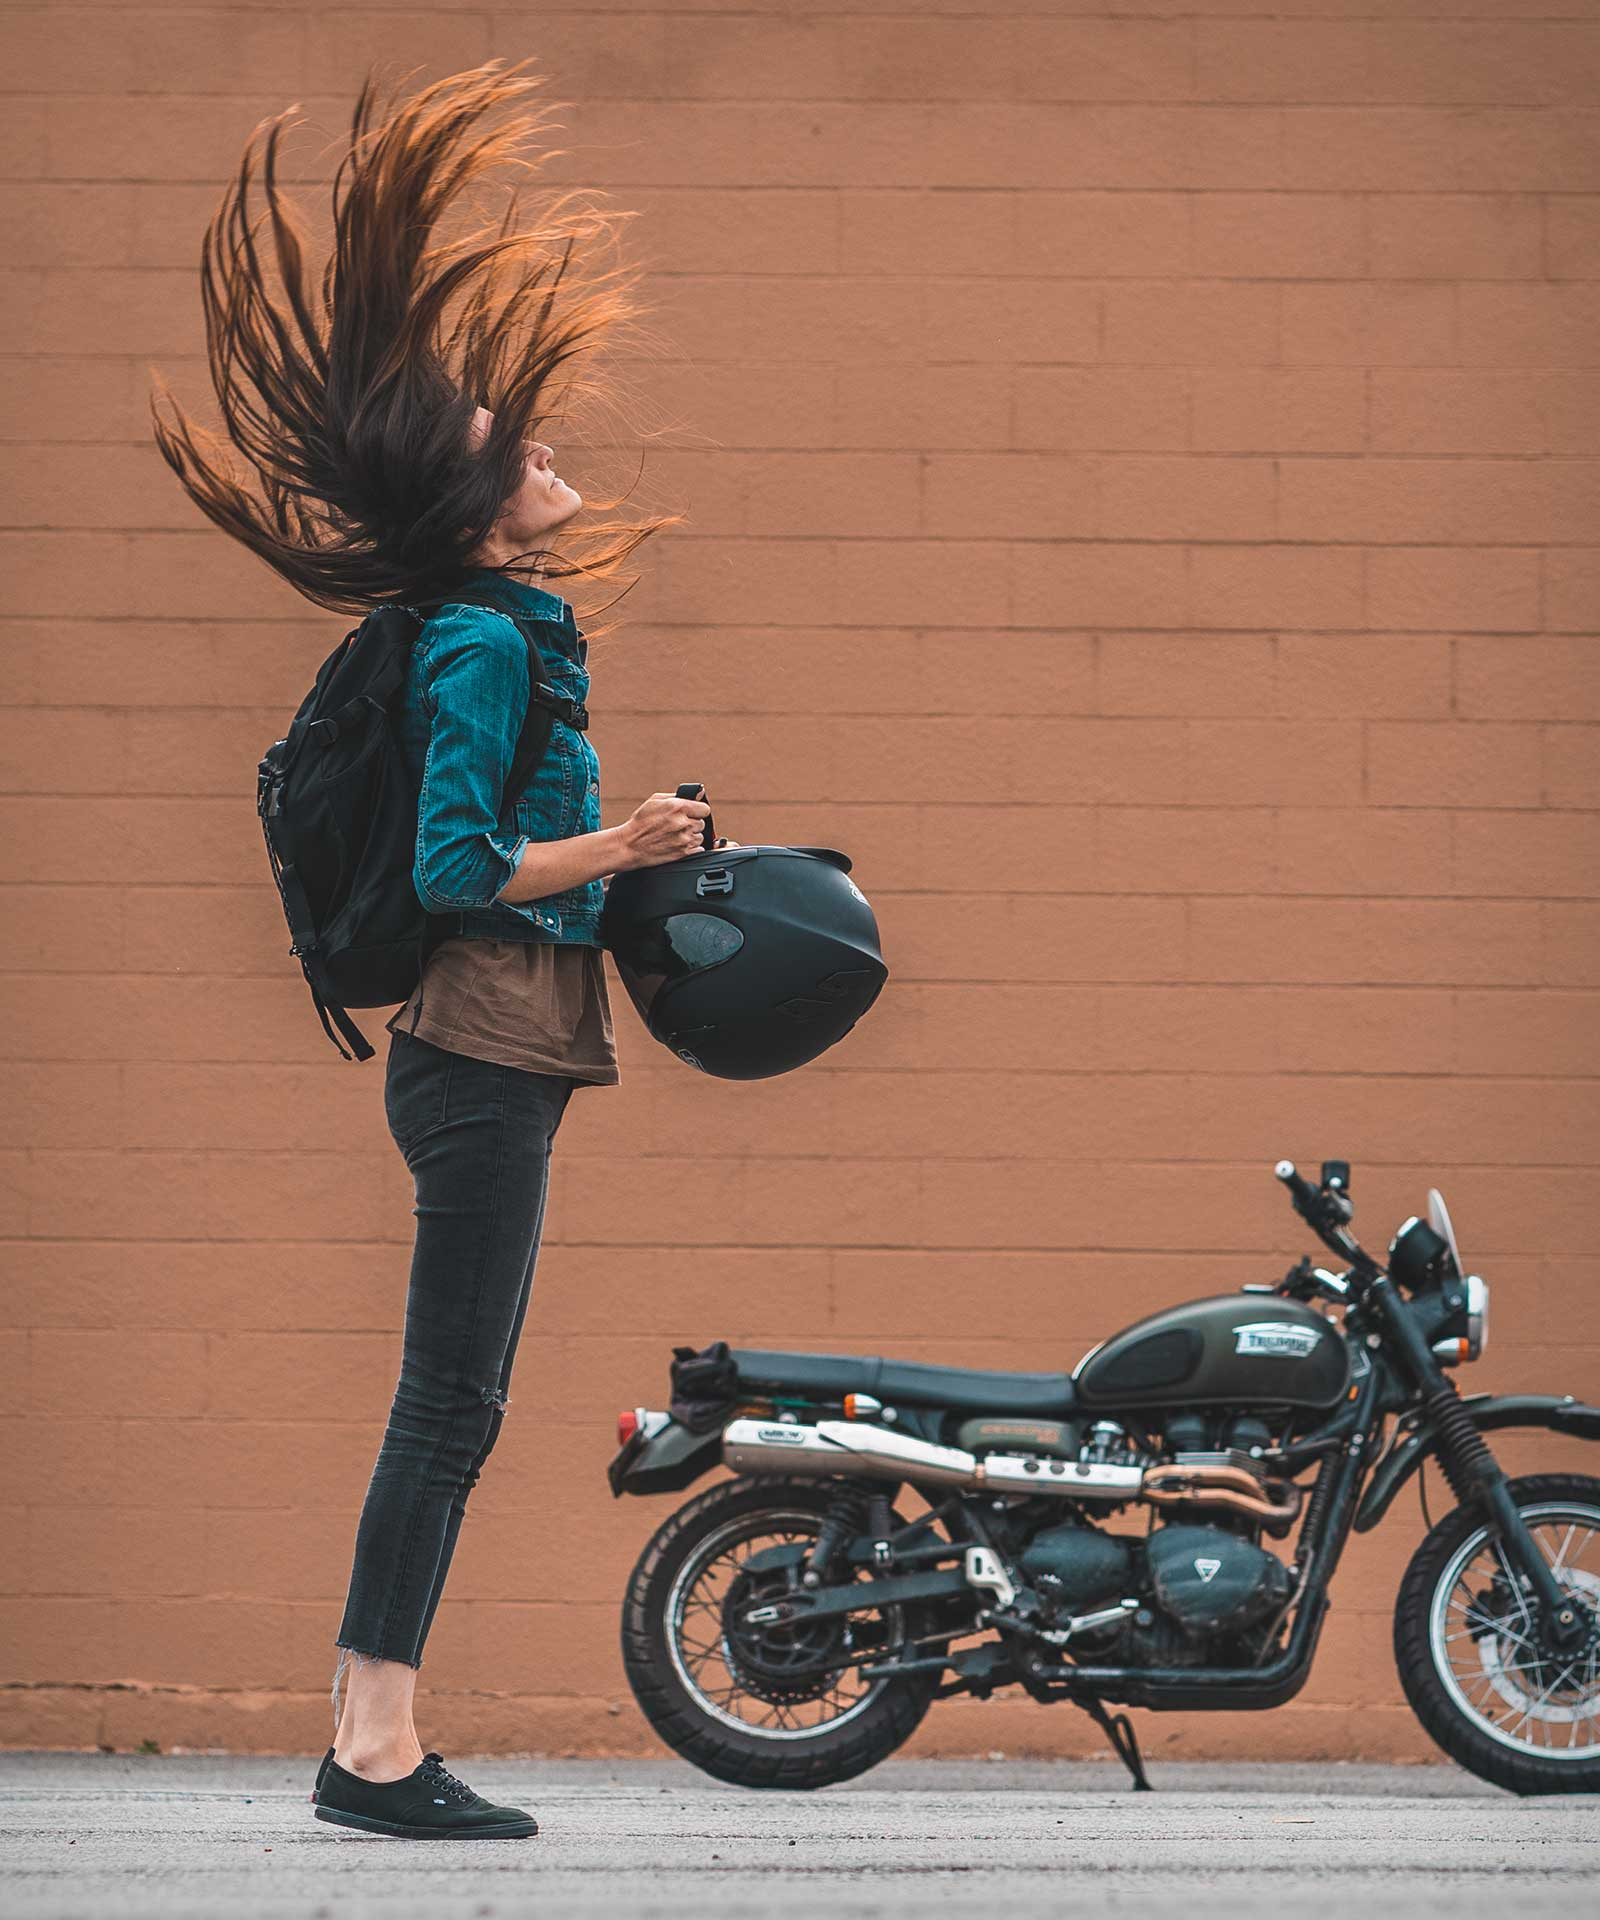 Helmet hair flip with Triumph Scrambler in background